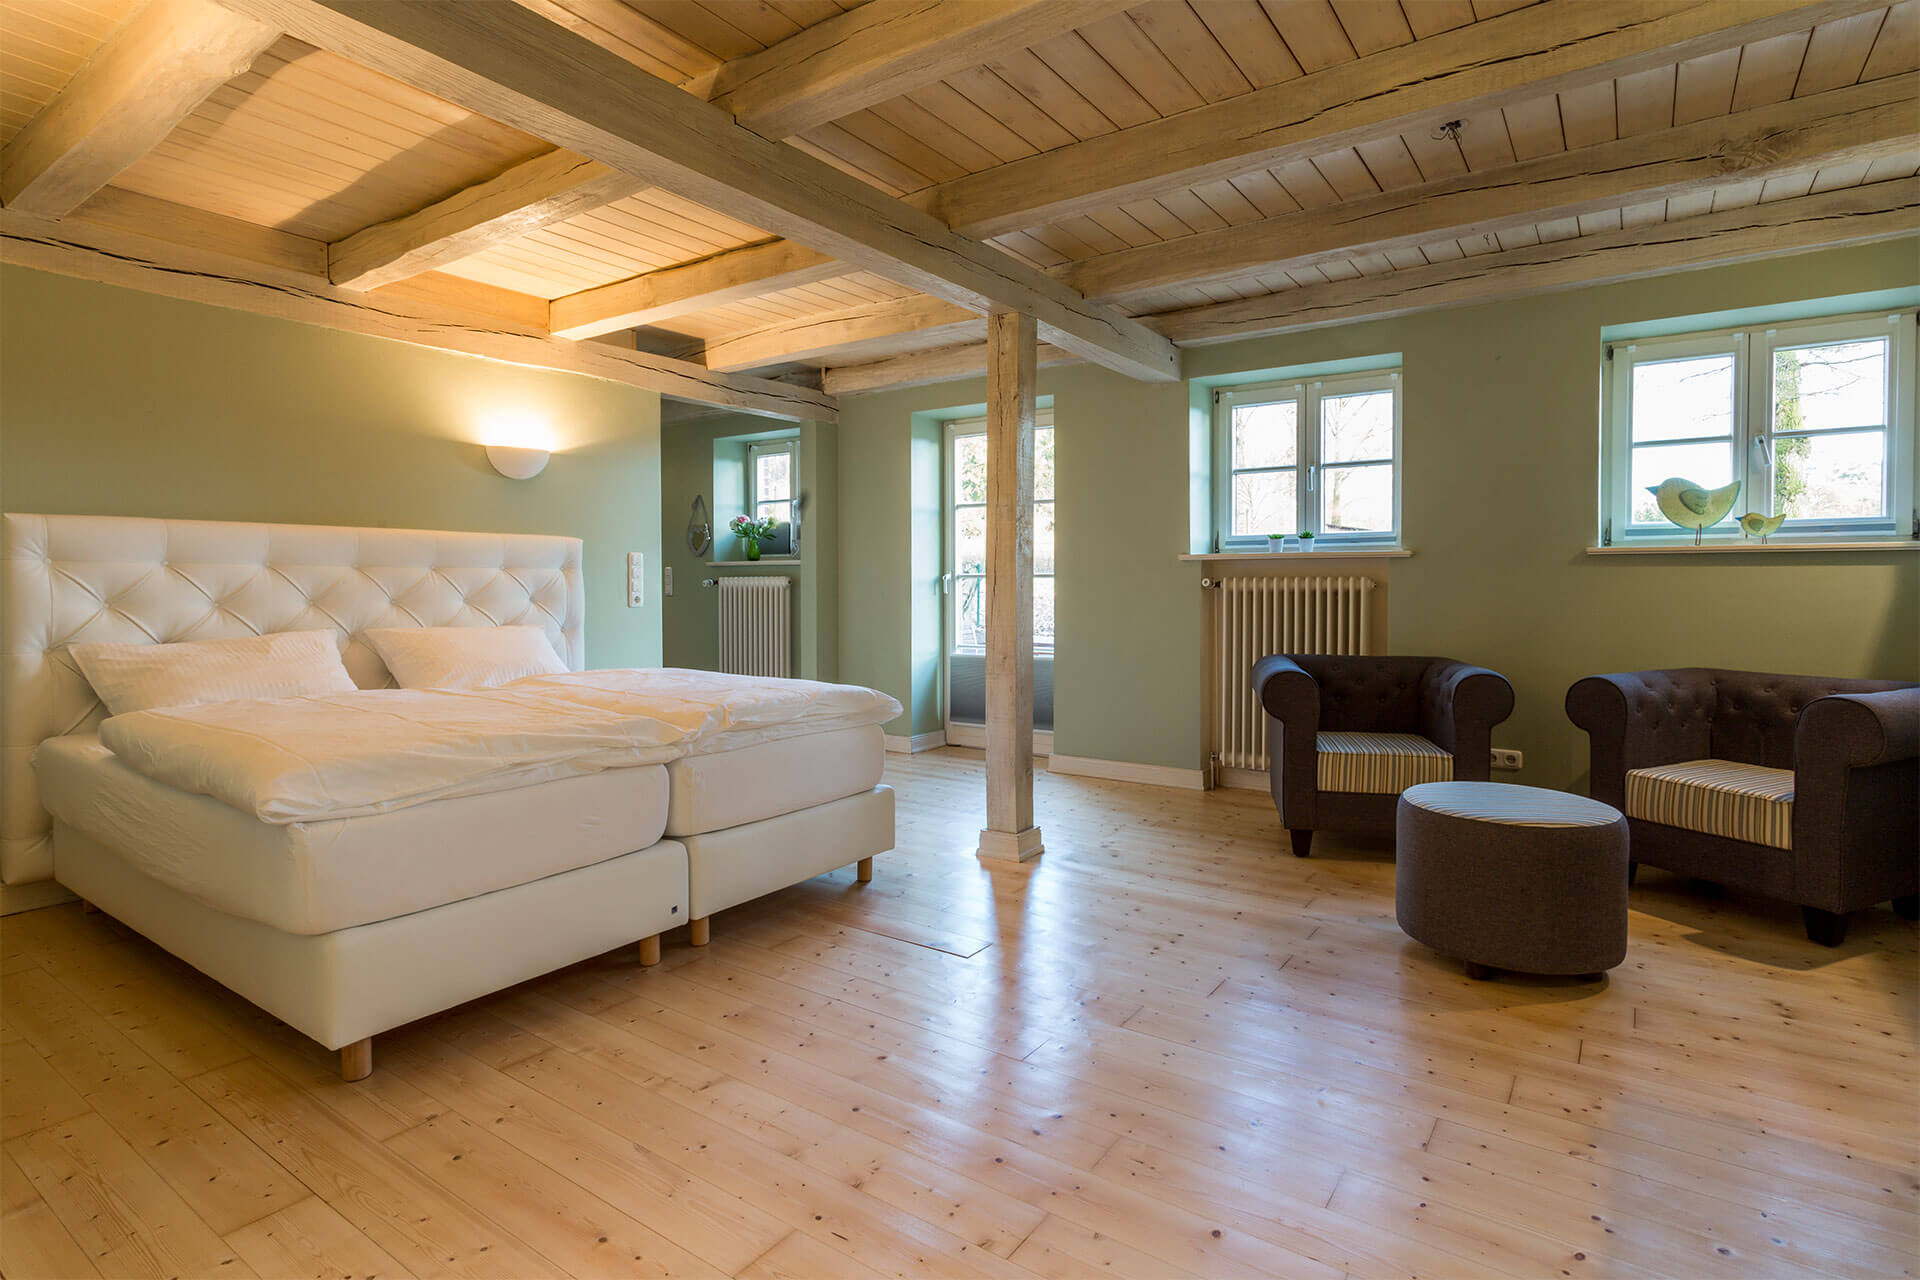 Living- and Bedroom wit boxspringbeds and cosy bed linen in the apartment Moritz